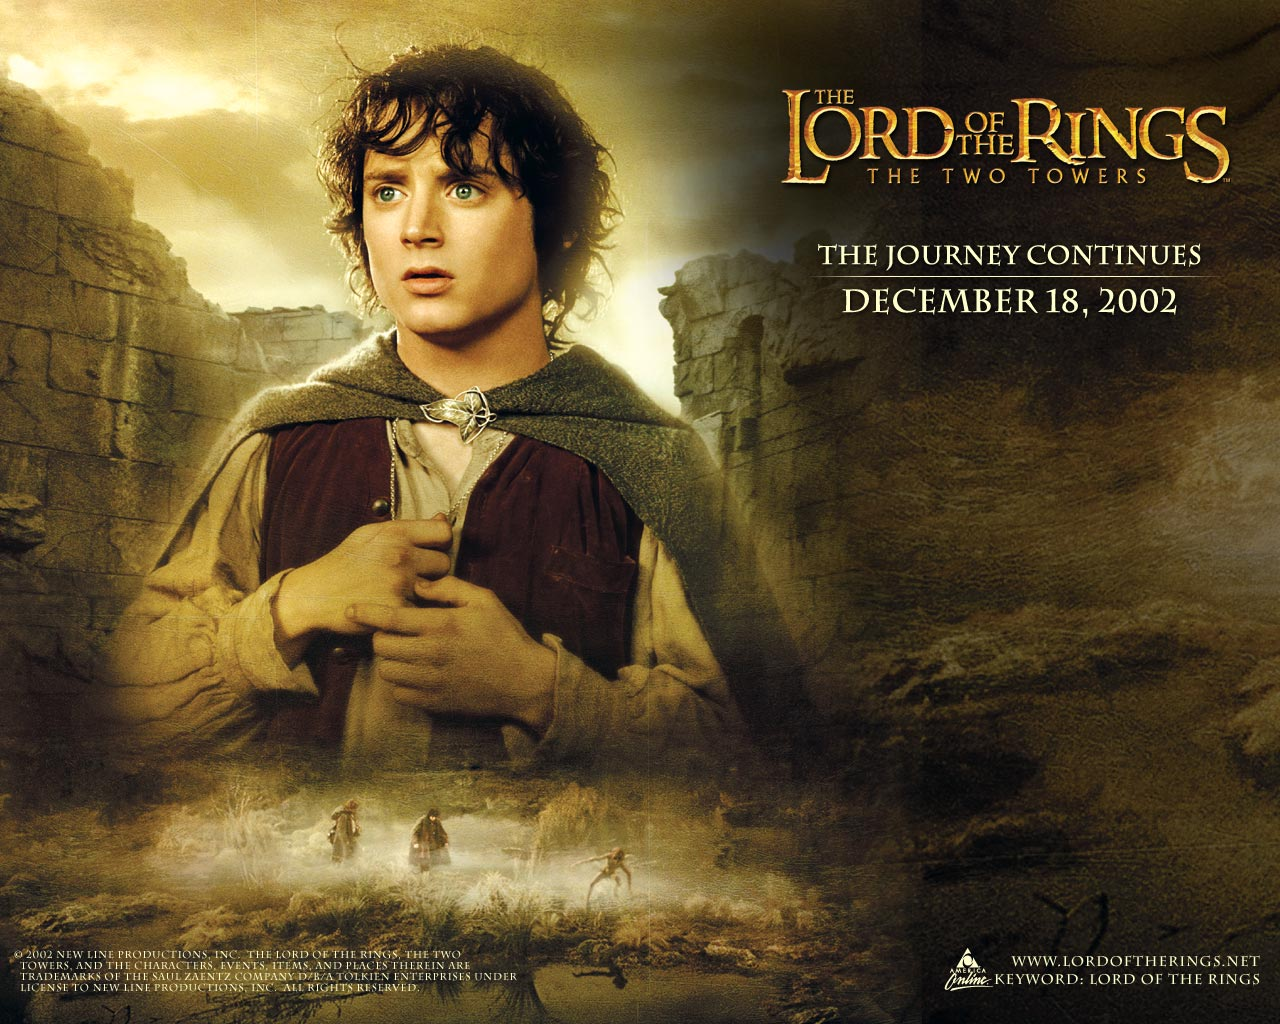 http://2.bp.blogspot.com/_NL8T4_VLWs4/S7yxaTpyYGI/AAAAAAAAAY0/ahPJrKYQOXs/s1600/Elijah_Wood_in_The_Lord_of_the_Rings__The_Two_Towers_Wallpaper_5_1280.jpg